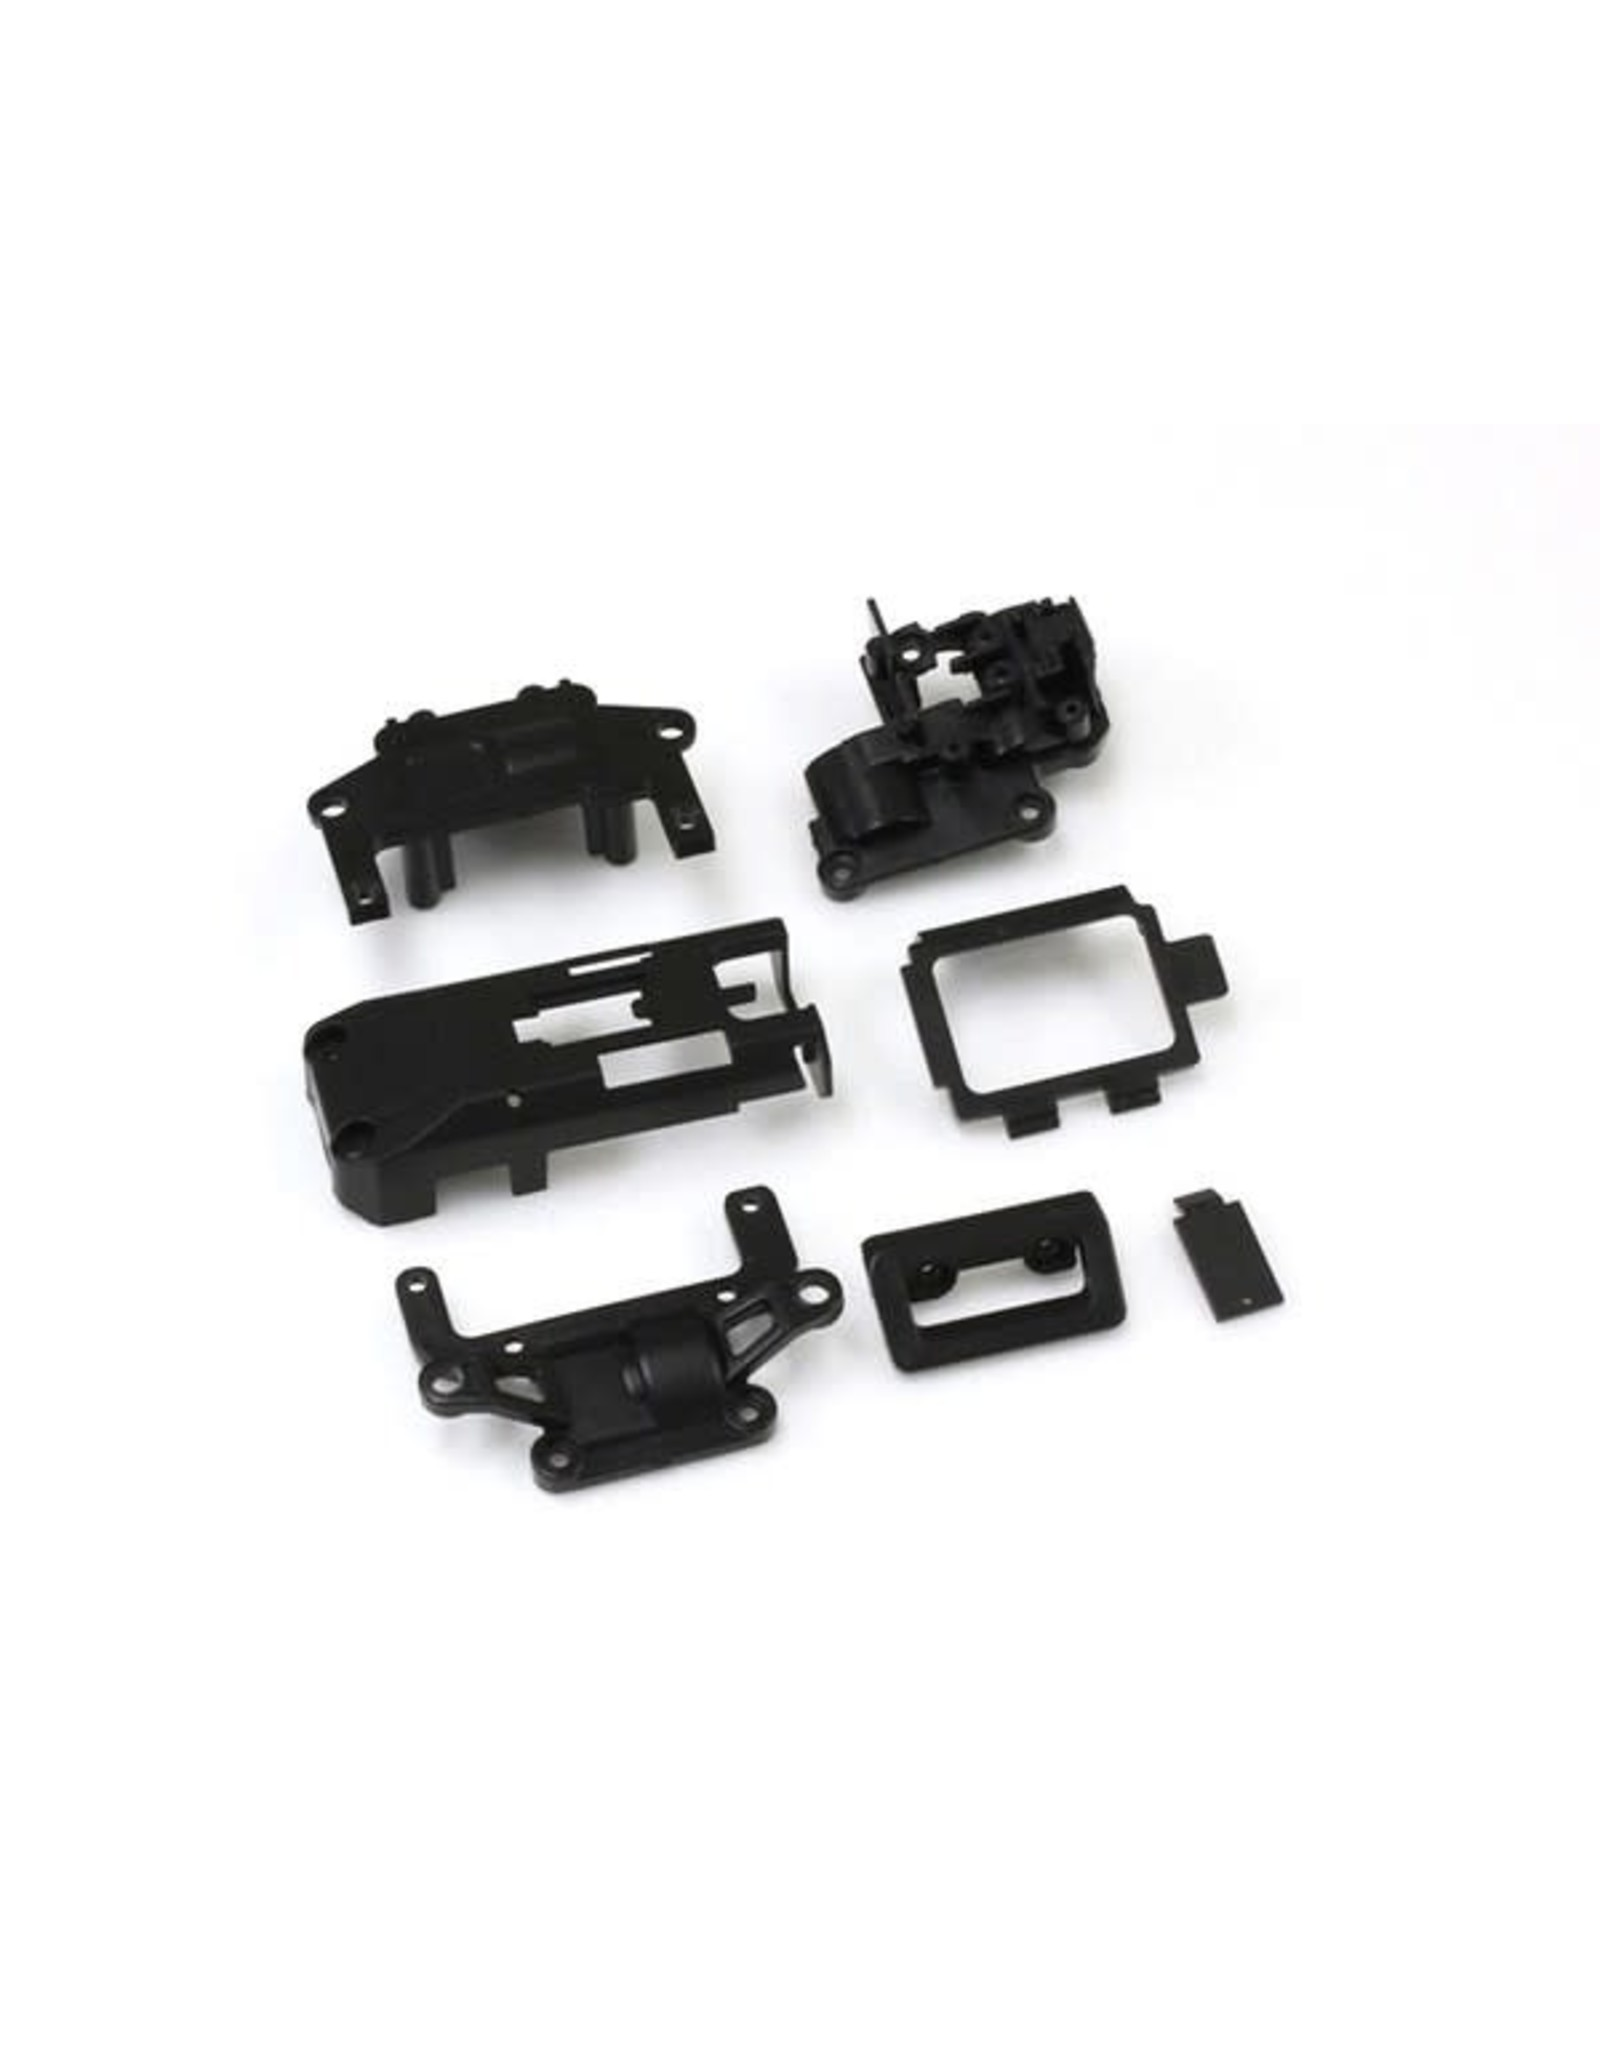 Kyosho Rear Main Chassis Set (ASF/Sports) MD209